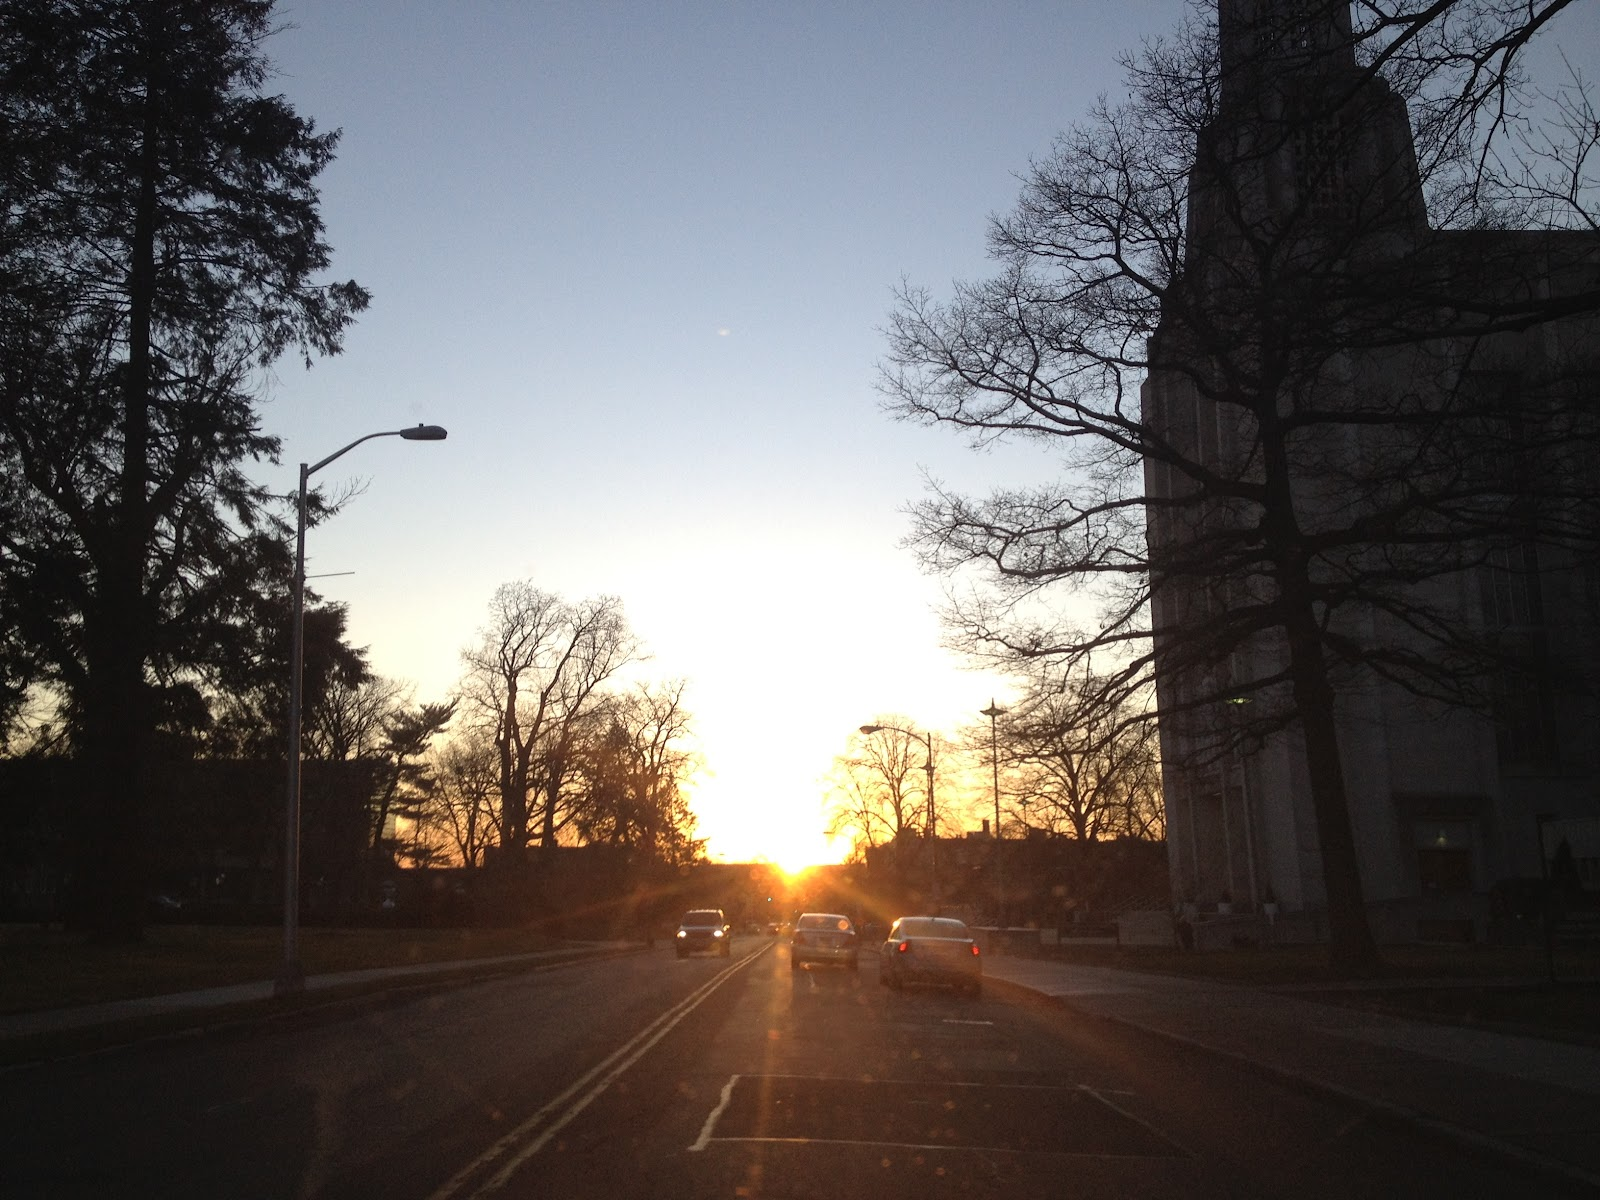 Especially If You Are Heading Down Farmington Ave Around Sunset Sunsets Are Almost Always Wonderful To Watch Unless You Happen To Be Driving Into One In